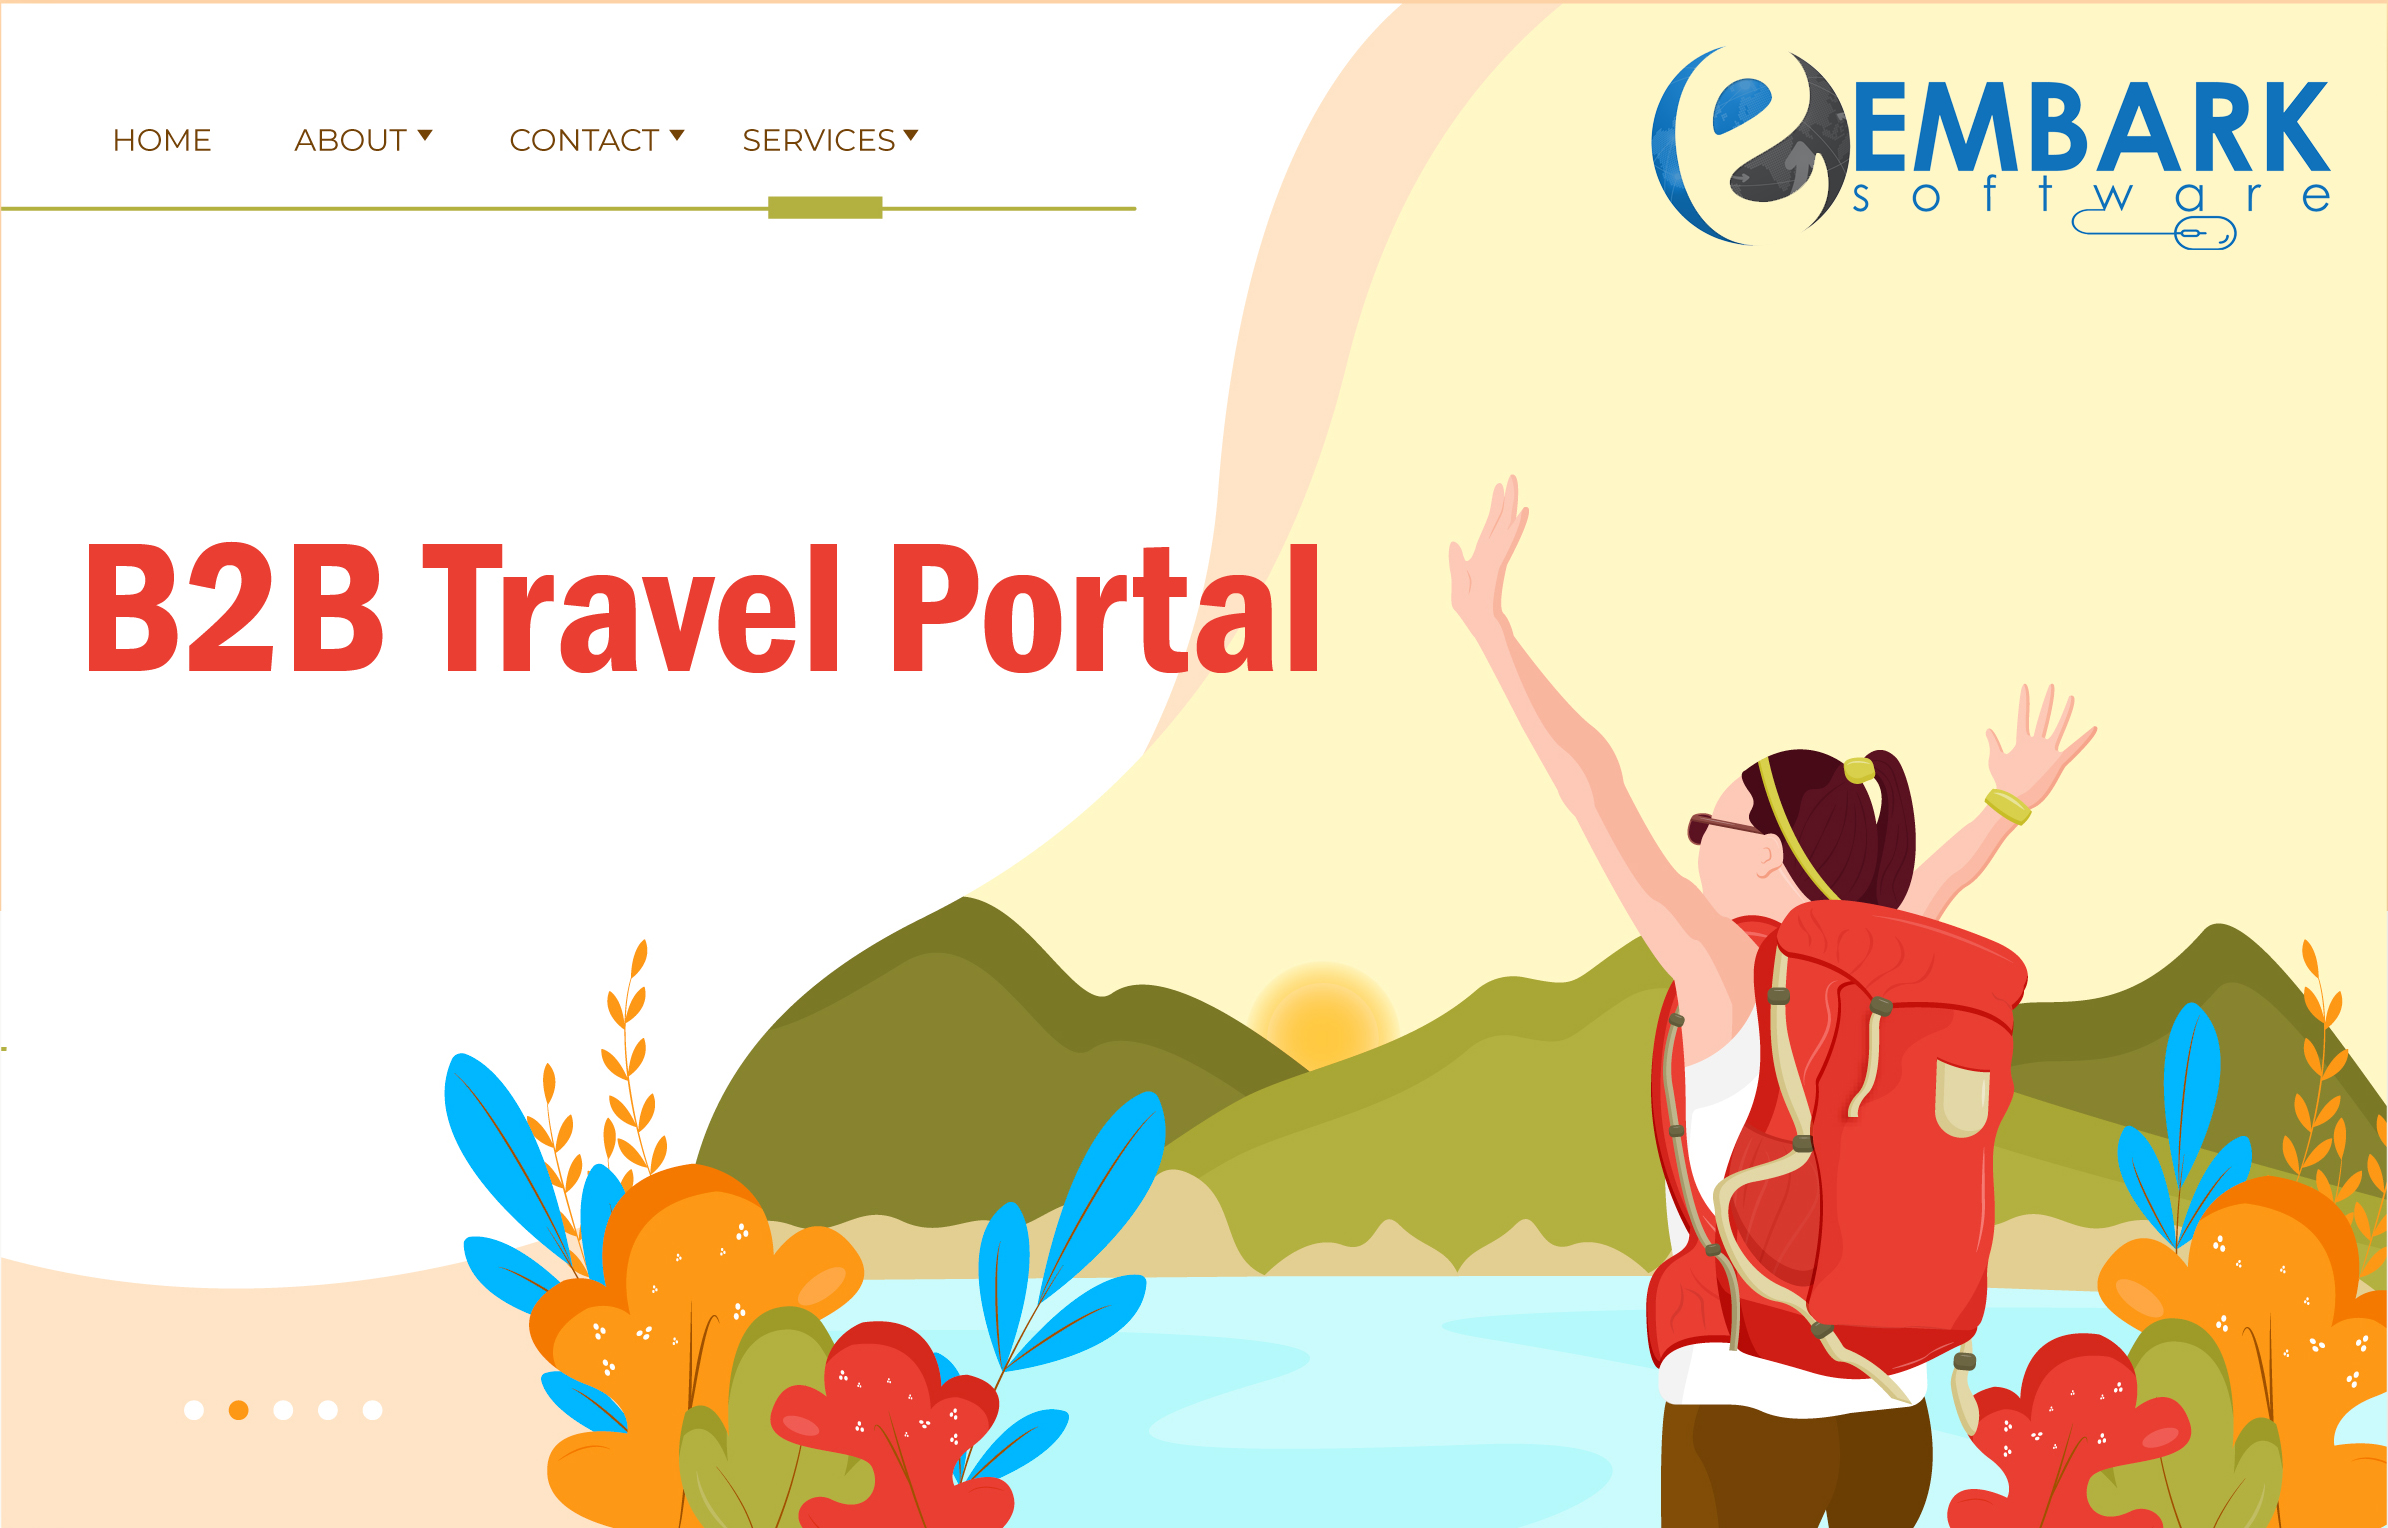 How B2B Travel Portal will Enhance the Growth of Your Travel Business